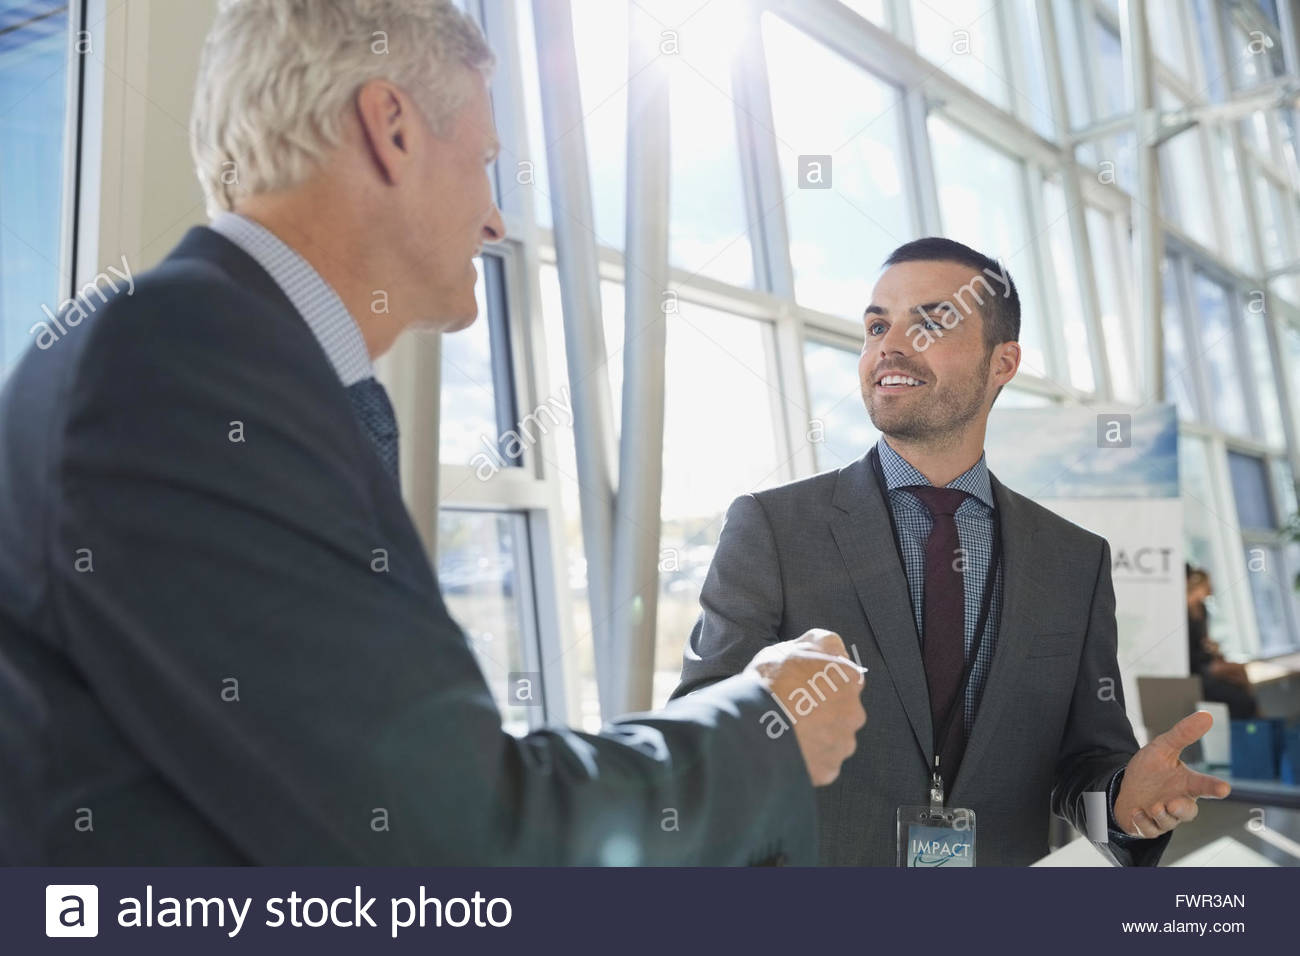 Businessmen exchanging business cards - Stock Image